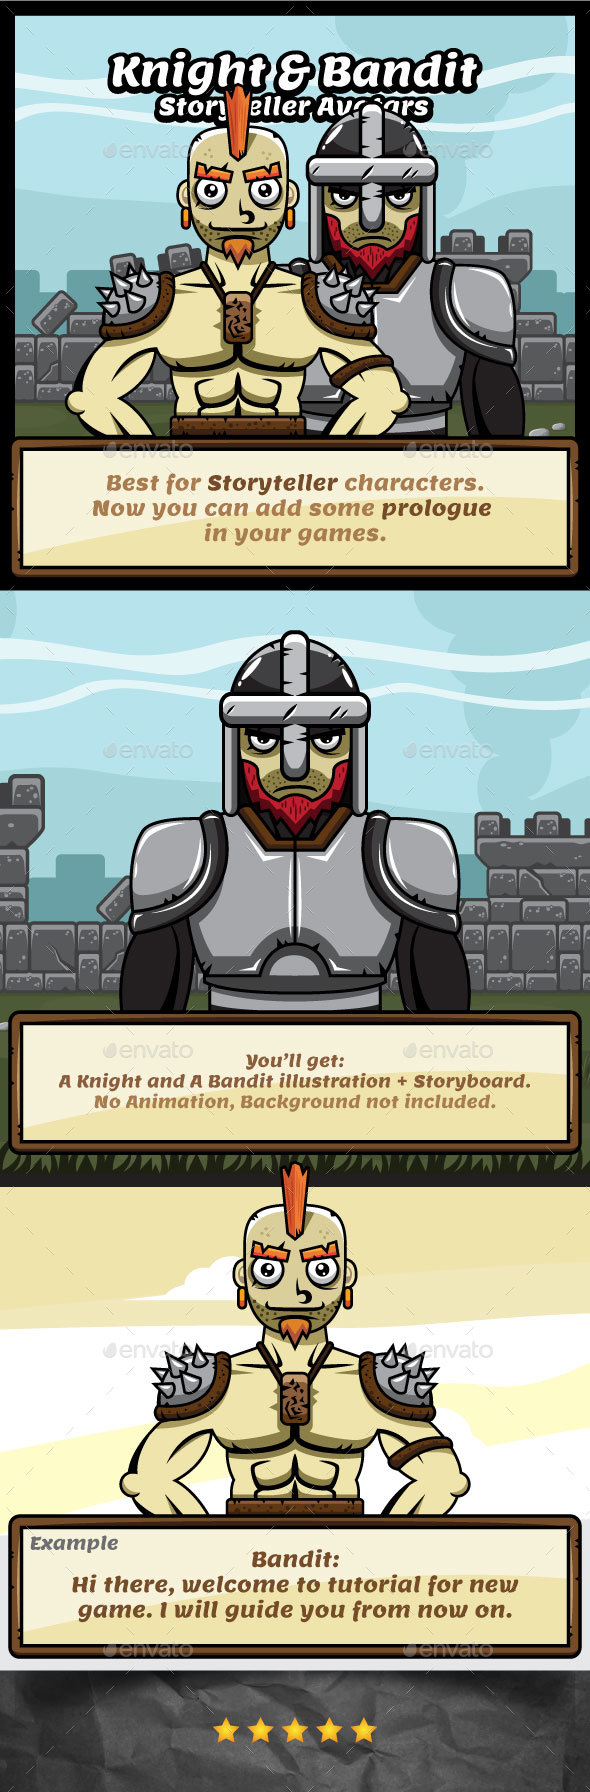 Storyteller Avatar - Knight and Bandit - Medieval Kingdom Theme - Miscellaneous Game Assets